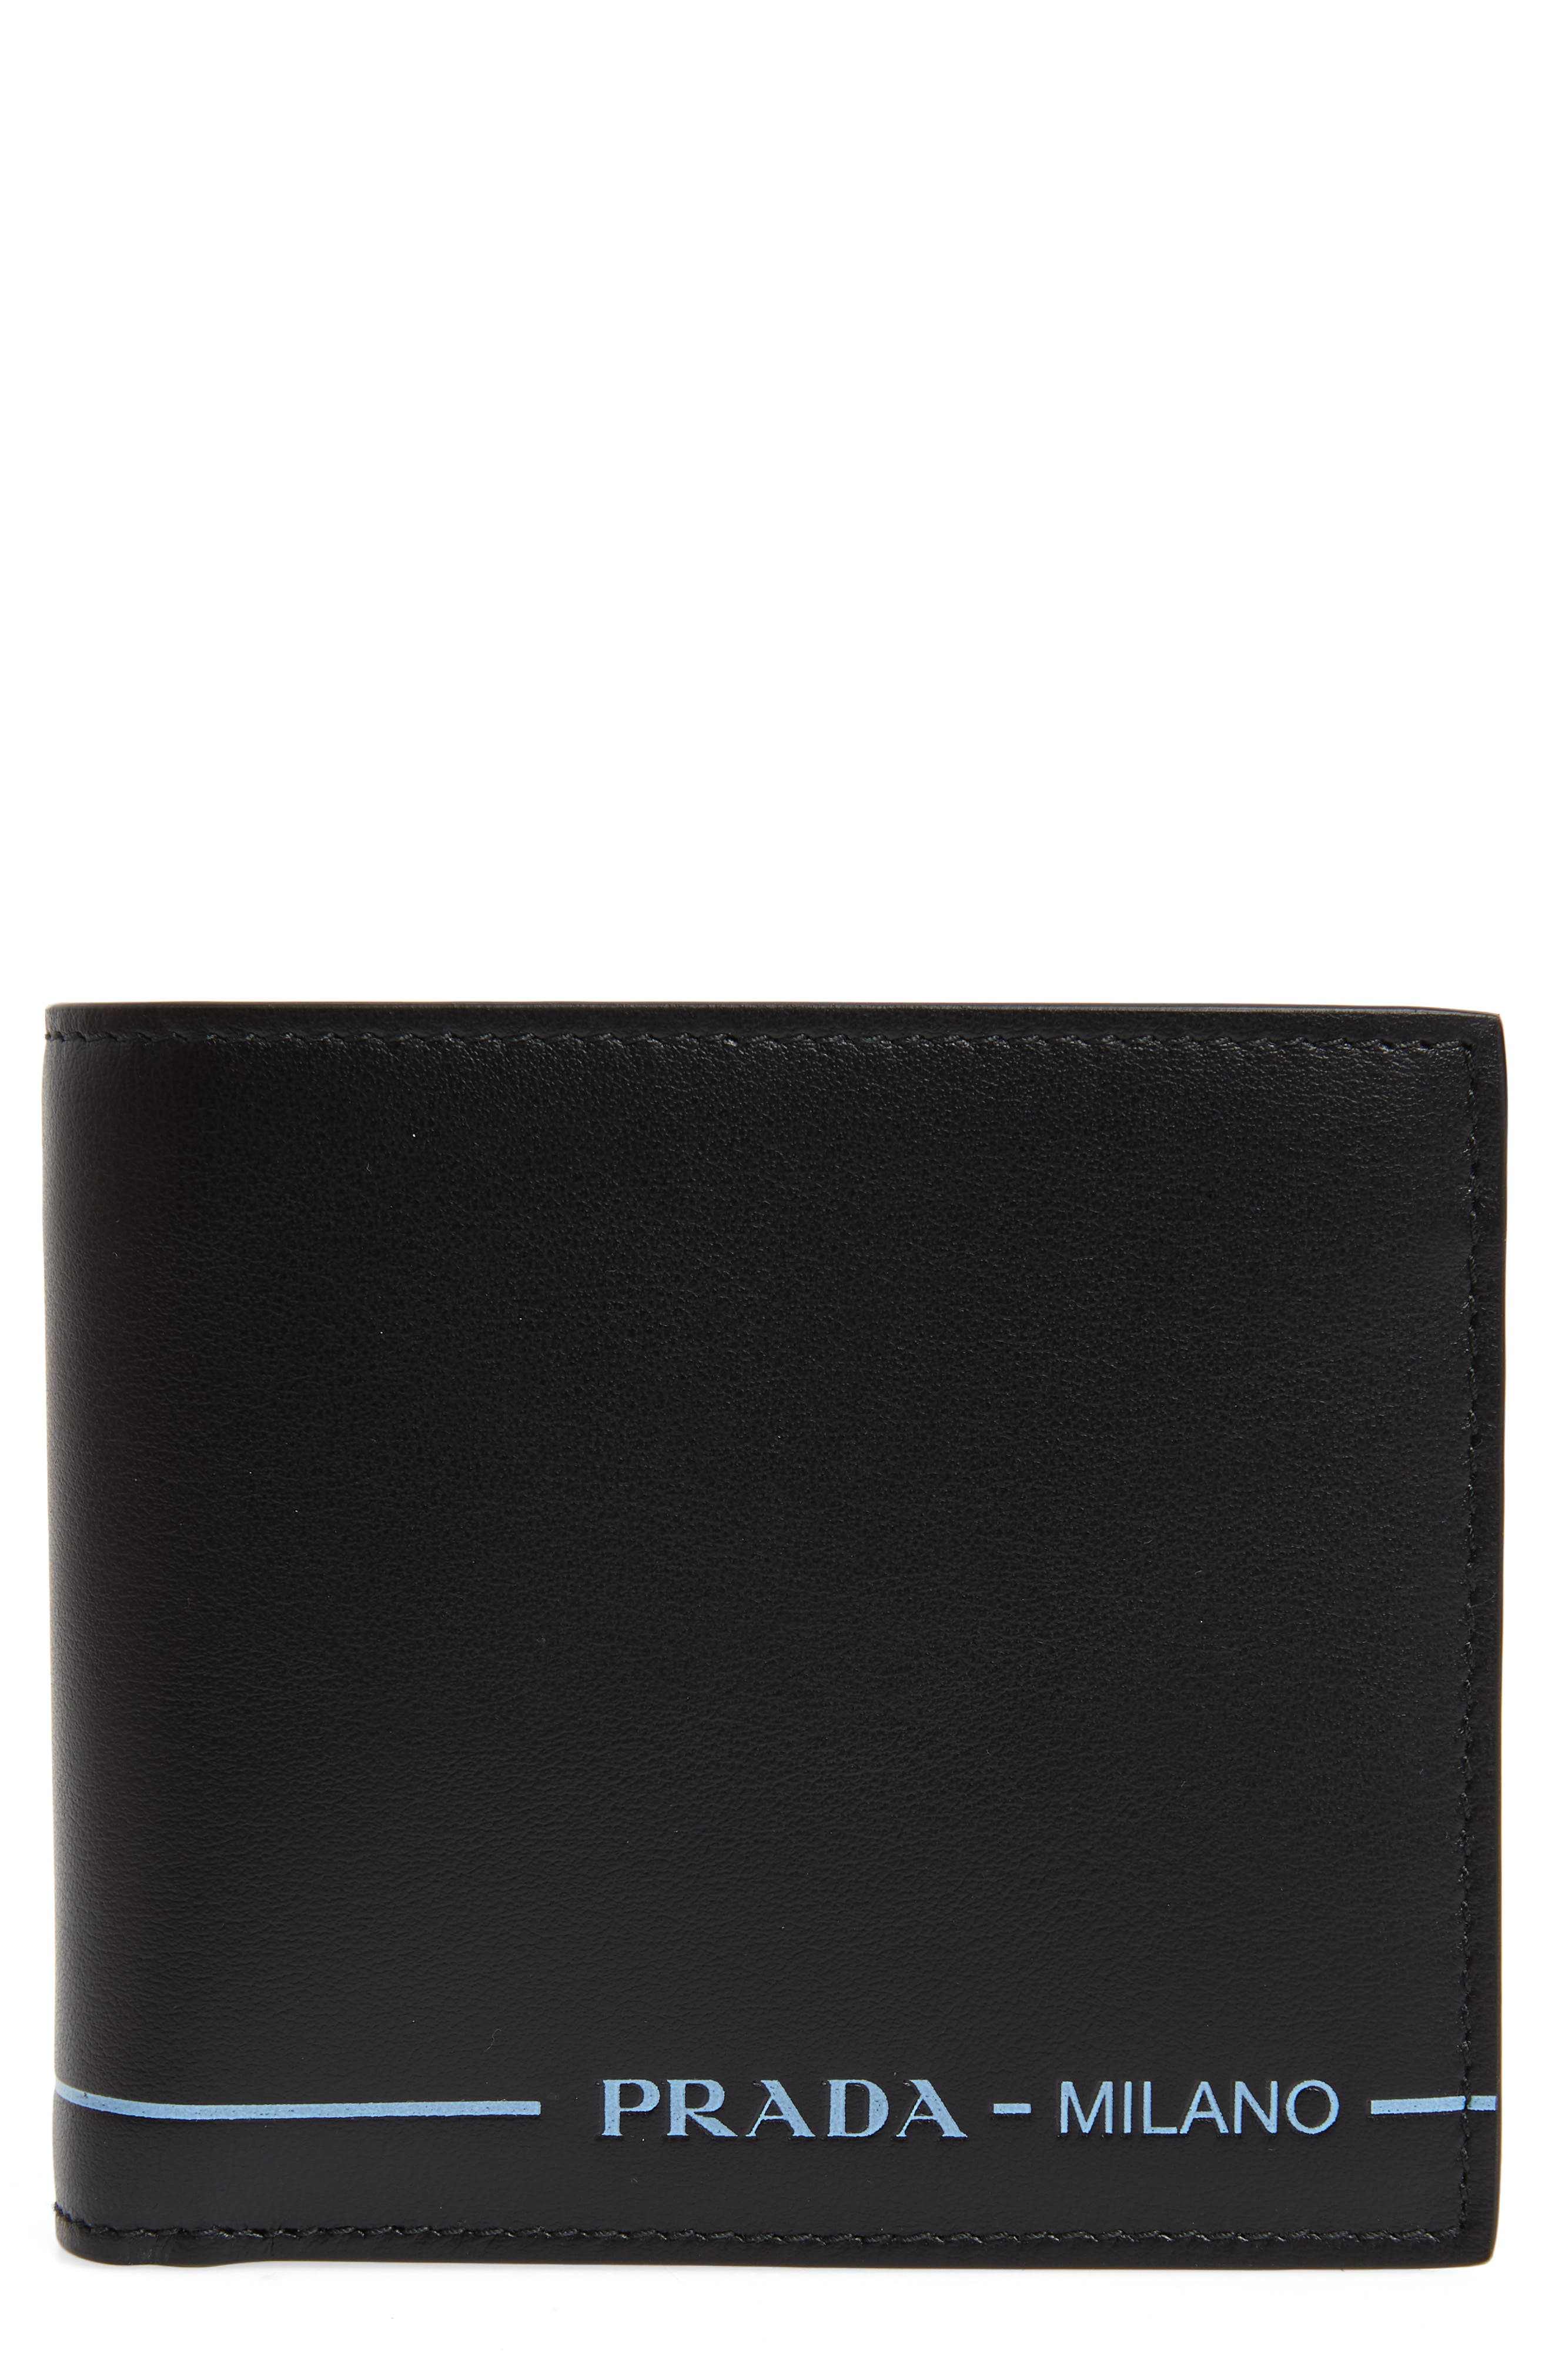 City Sport Leather Wallet,                         Main,                         color, 001